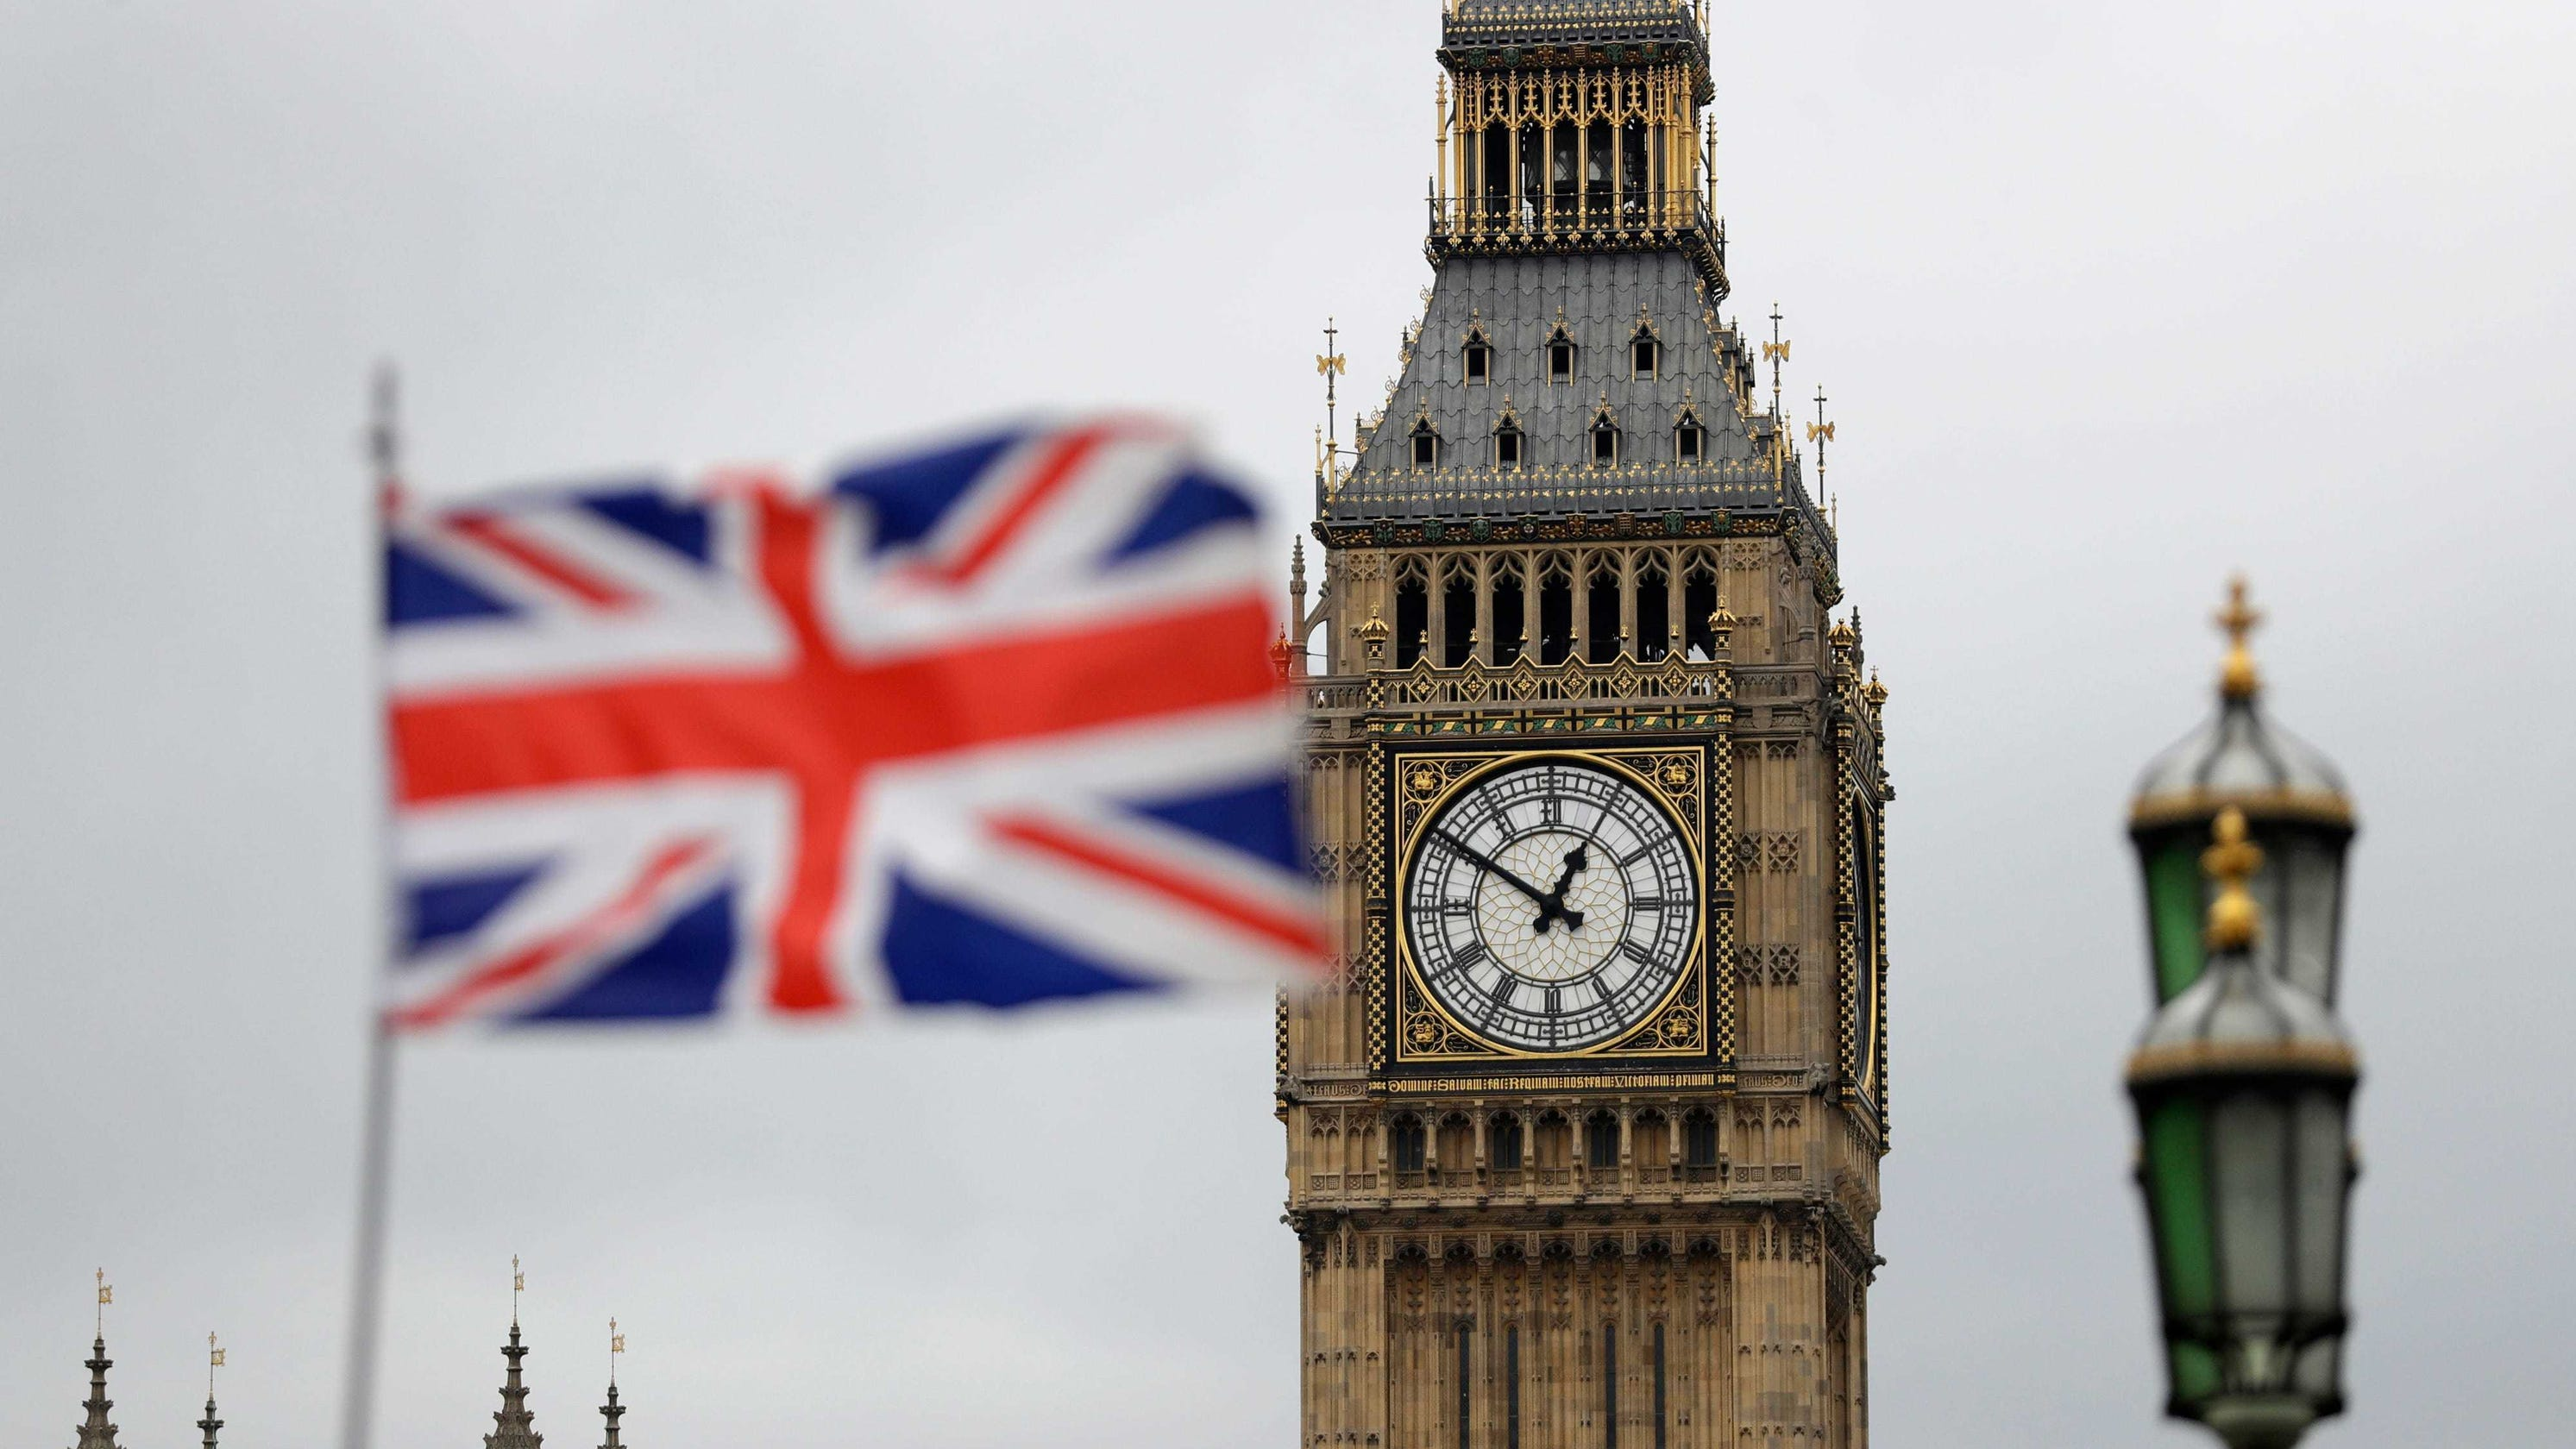 Today in History, May 31, 1859: Big Ben's clock chimed for the first time